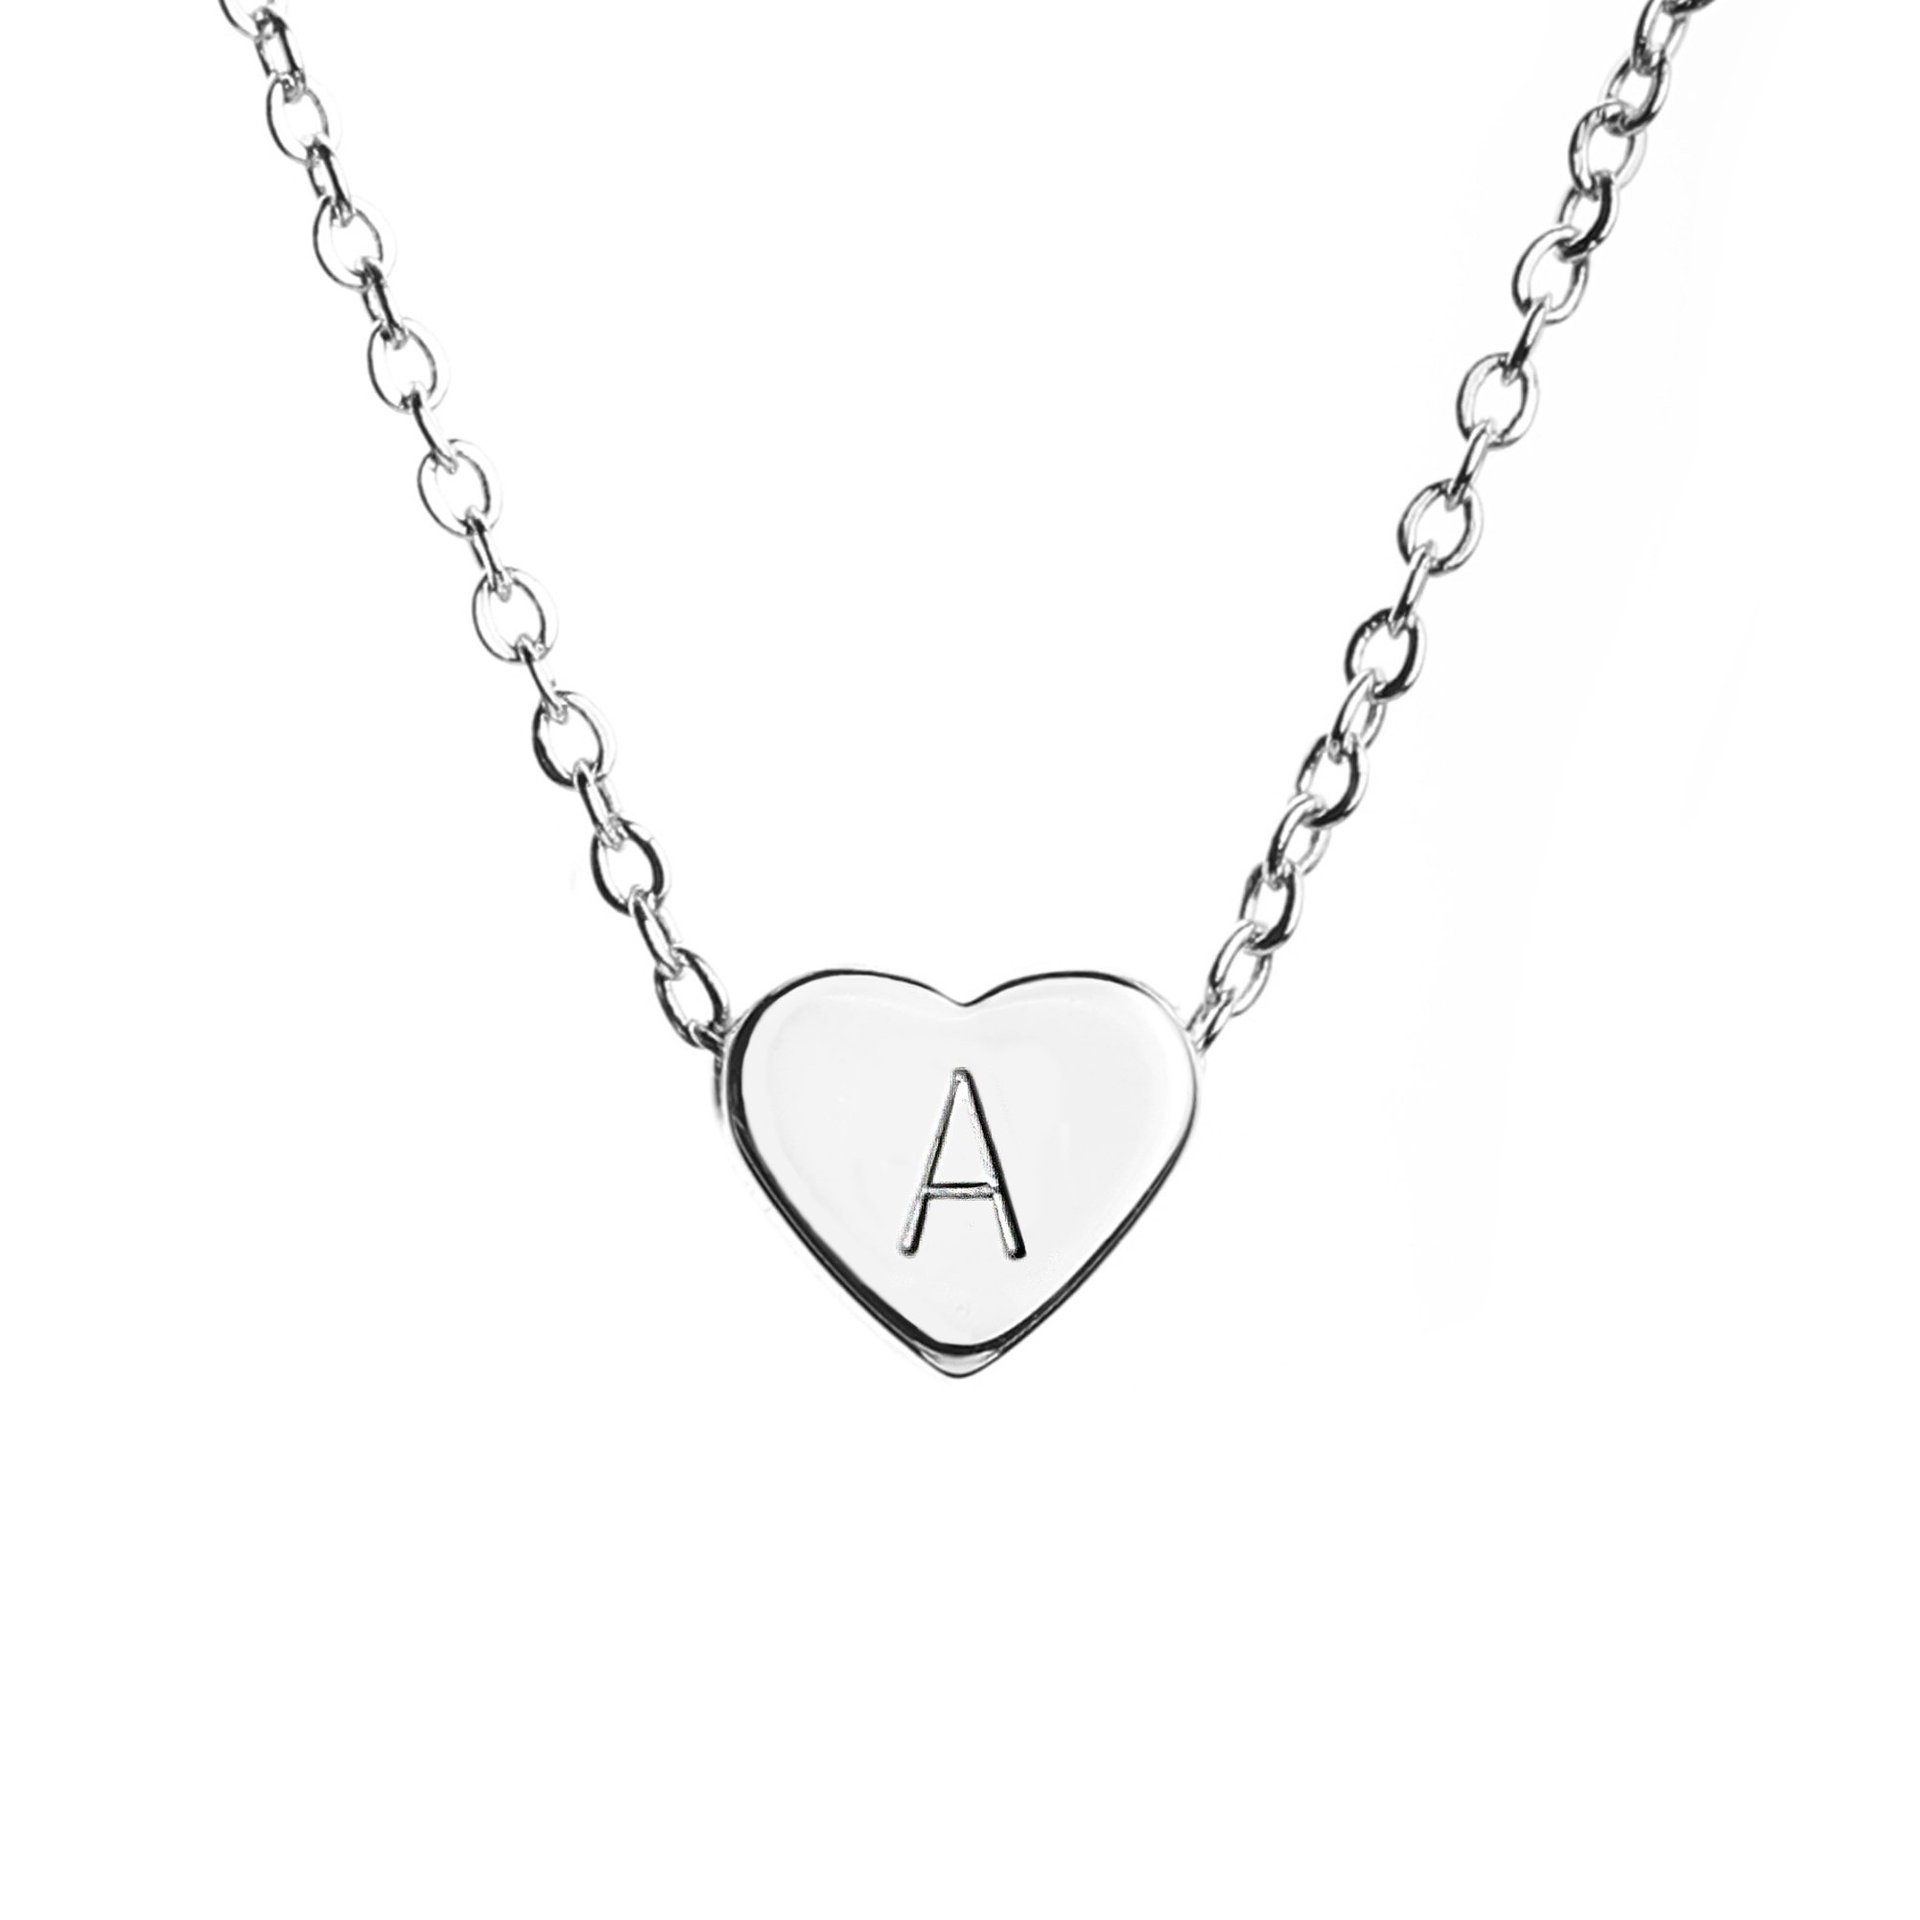 Lutio 925 Sterling Silver Heart Initial Necklace Mother/Father's Gift Birthday's Gift Wedding Gift for her Or him(A)